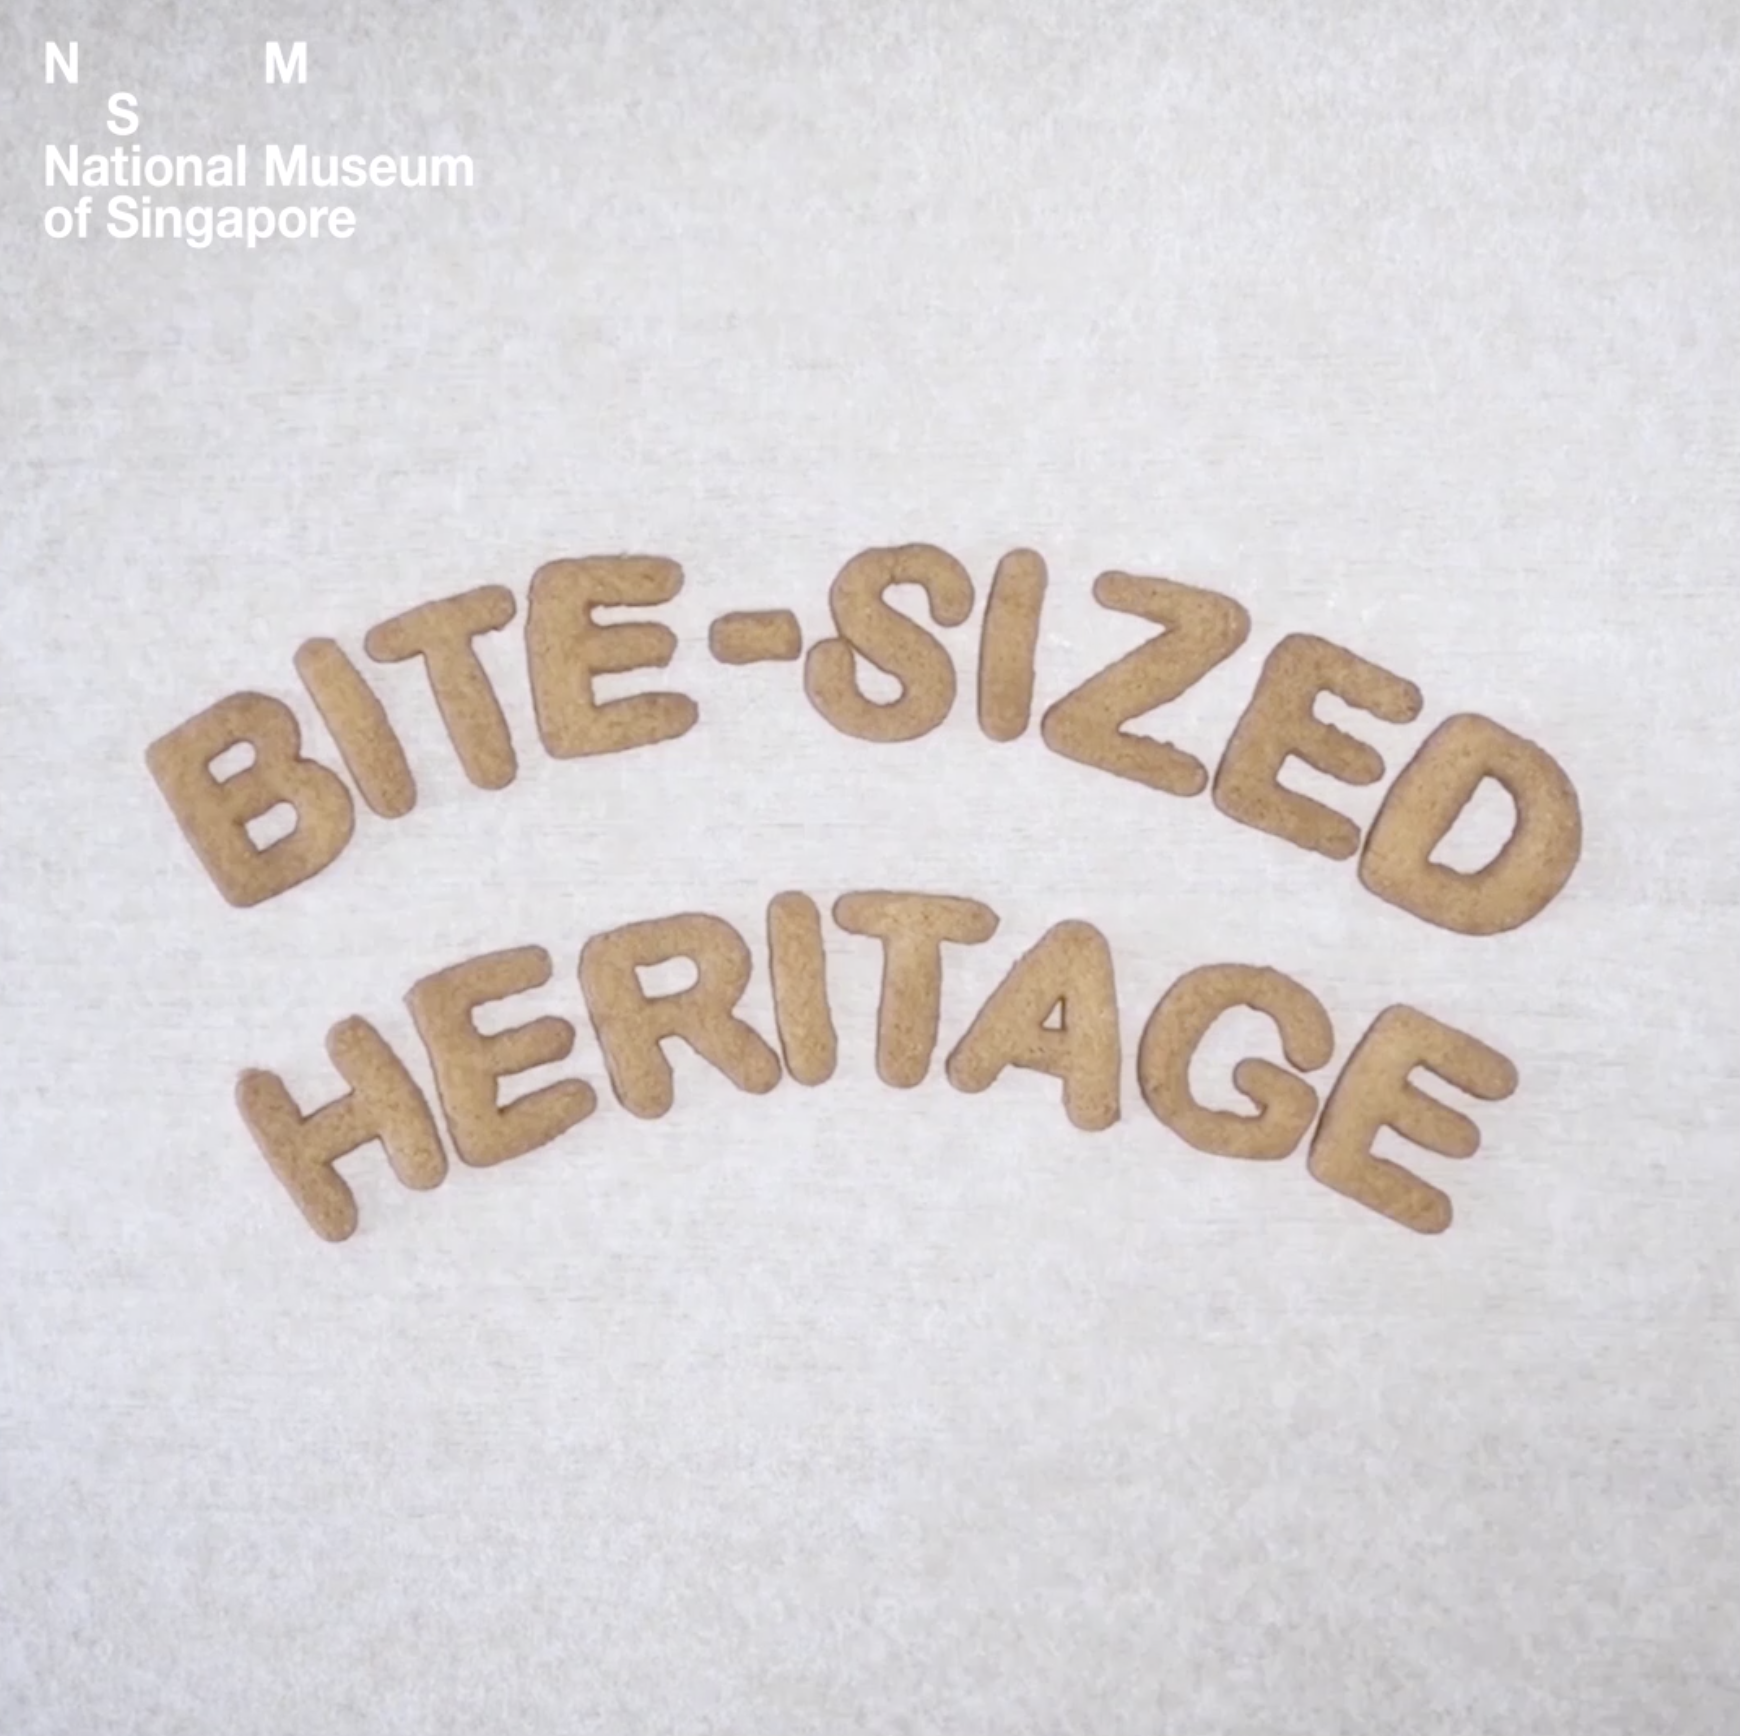 Bite sized heritage